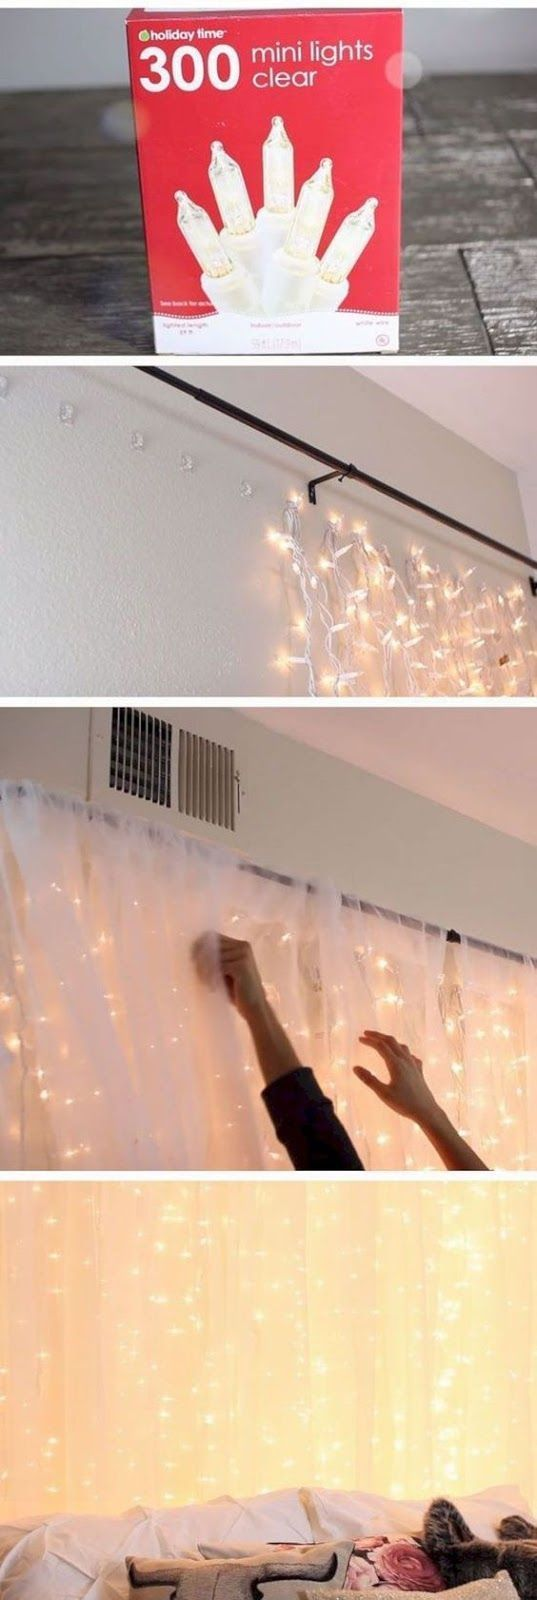 14 DIY Home Decor auf ein Budget Apartment Ideen #decoratingtips